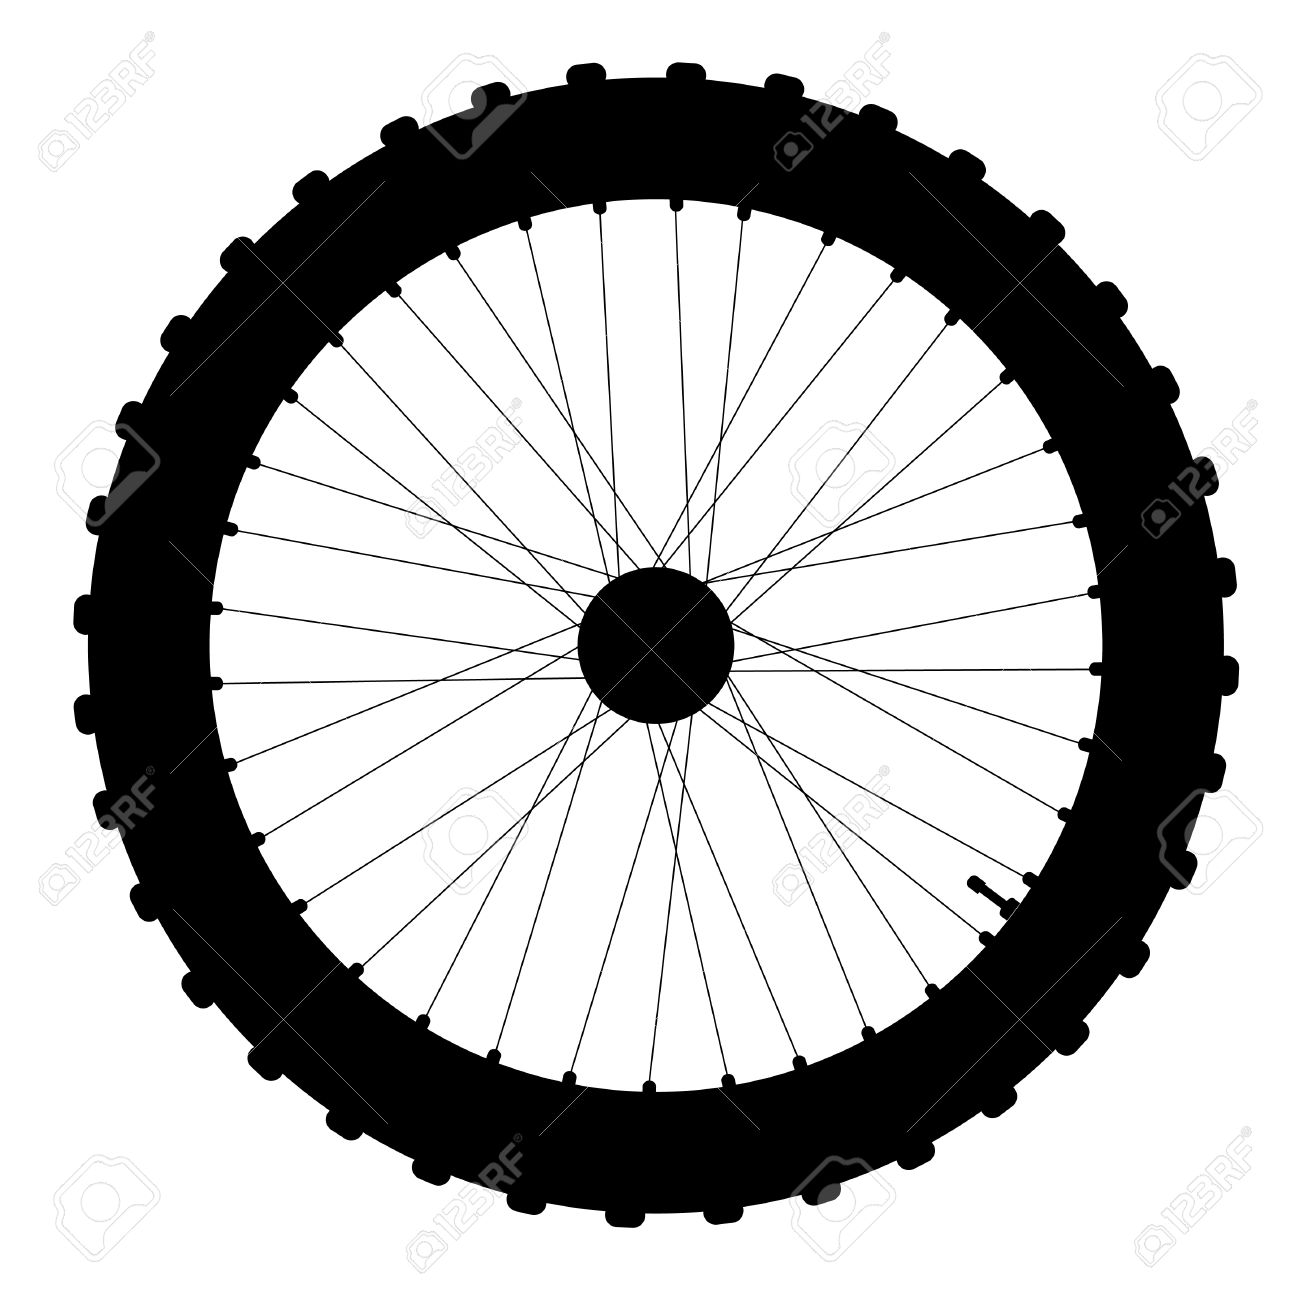 A Knobly Tyre On A Bicycle Wheel With Valve And Spoke Nipples.